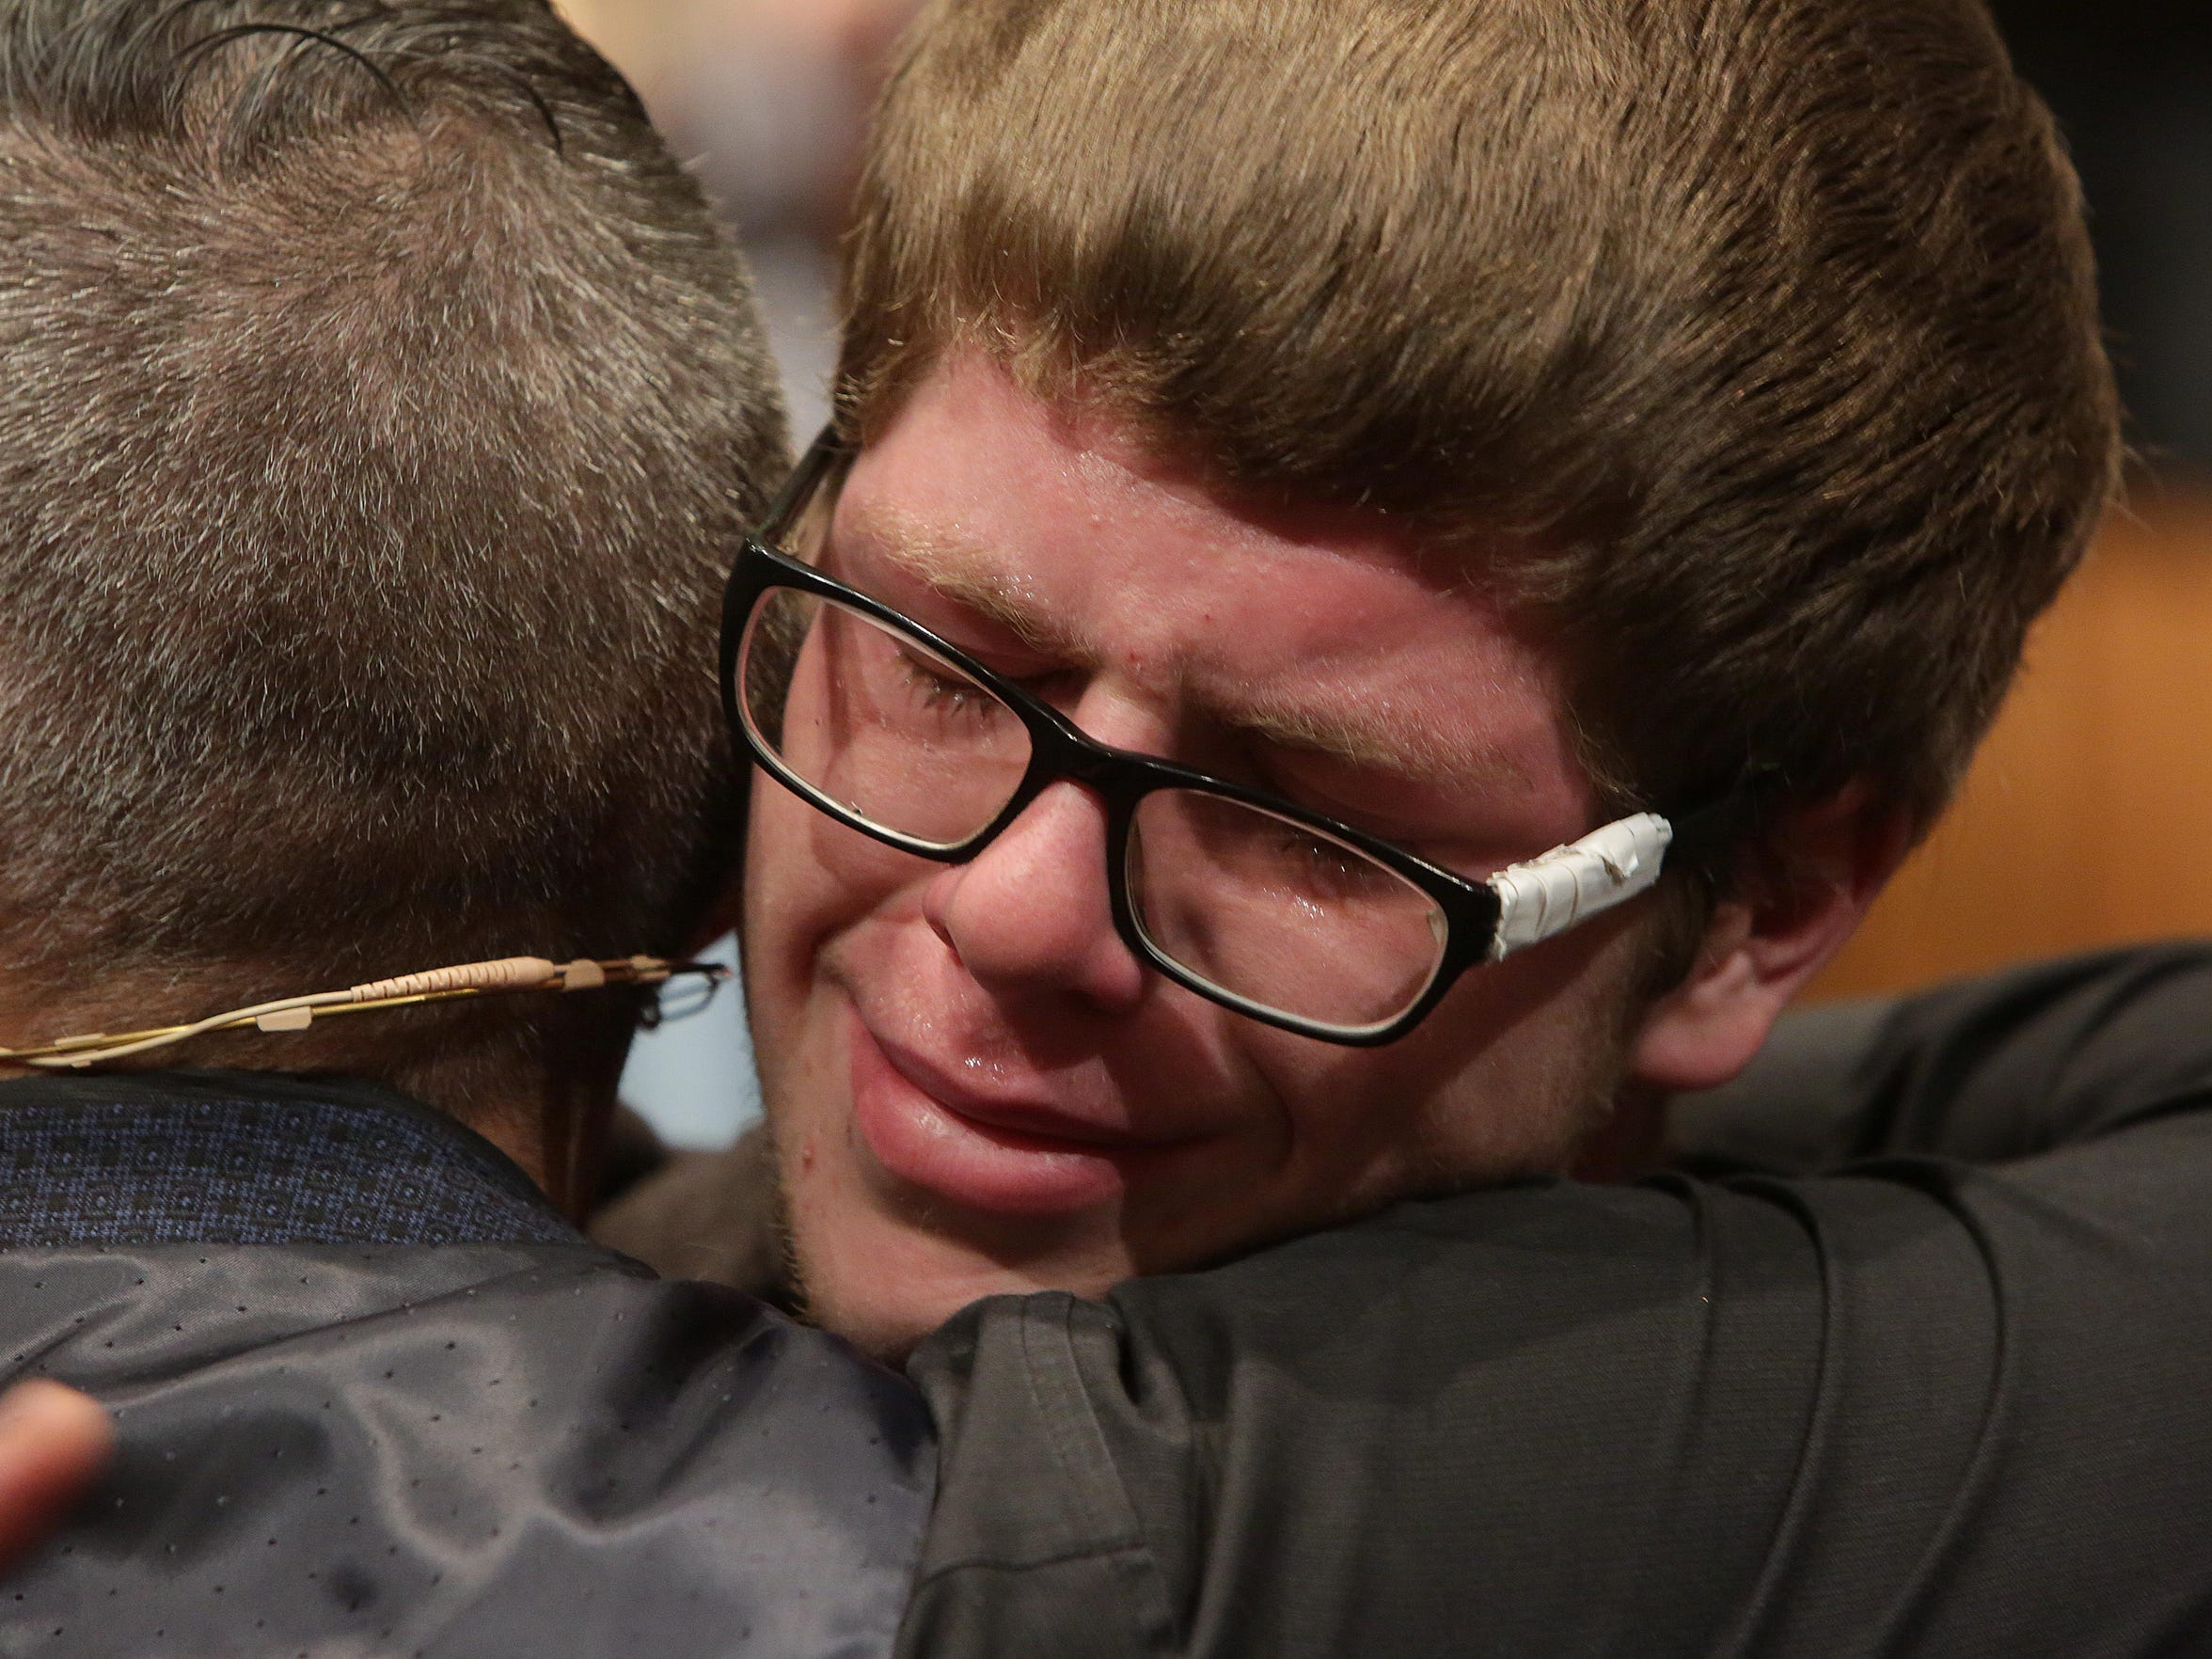 Newly formed CityReach Church is led by Pastor John Alarid and his wife, Hannah.  Jake Clayton, right, who came forward to accept Jesus Christ, is emotional as he is hugged by Pastor John Alarid.